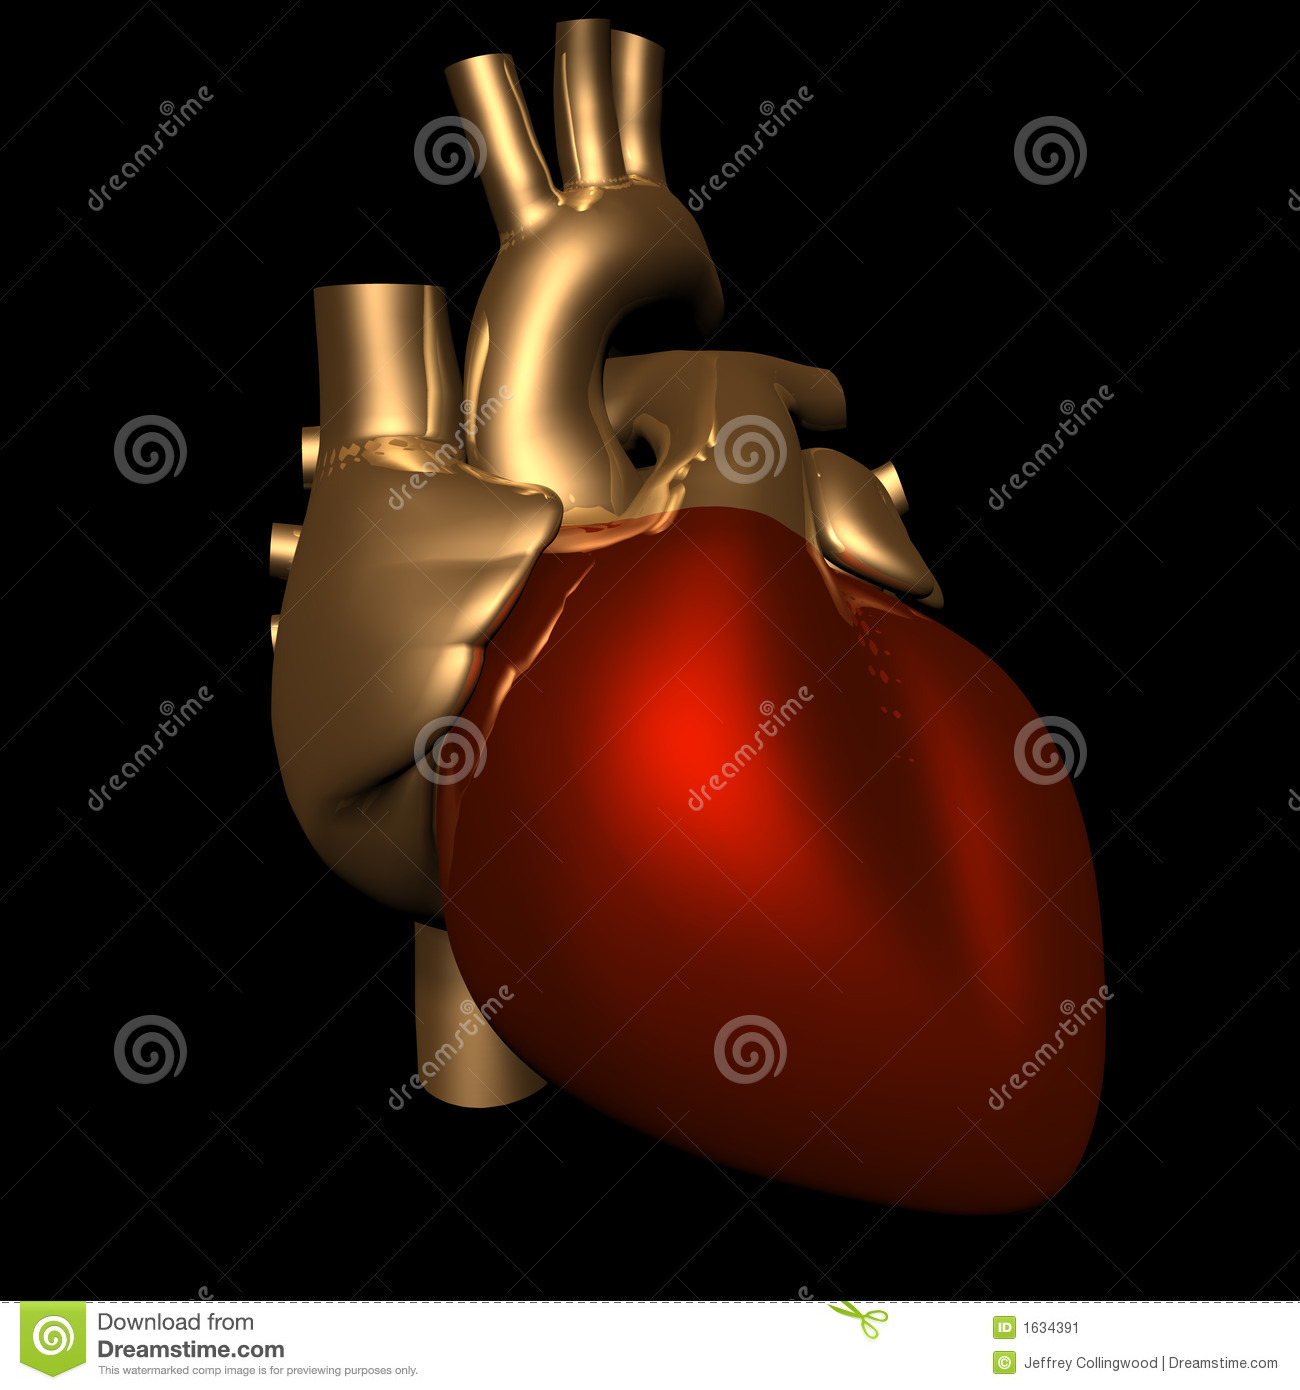 Metallic Heart In Gold And Red Stock Image - Image: 1634391